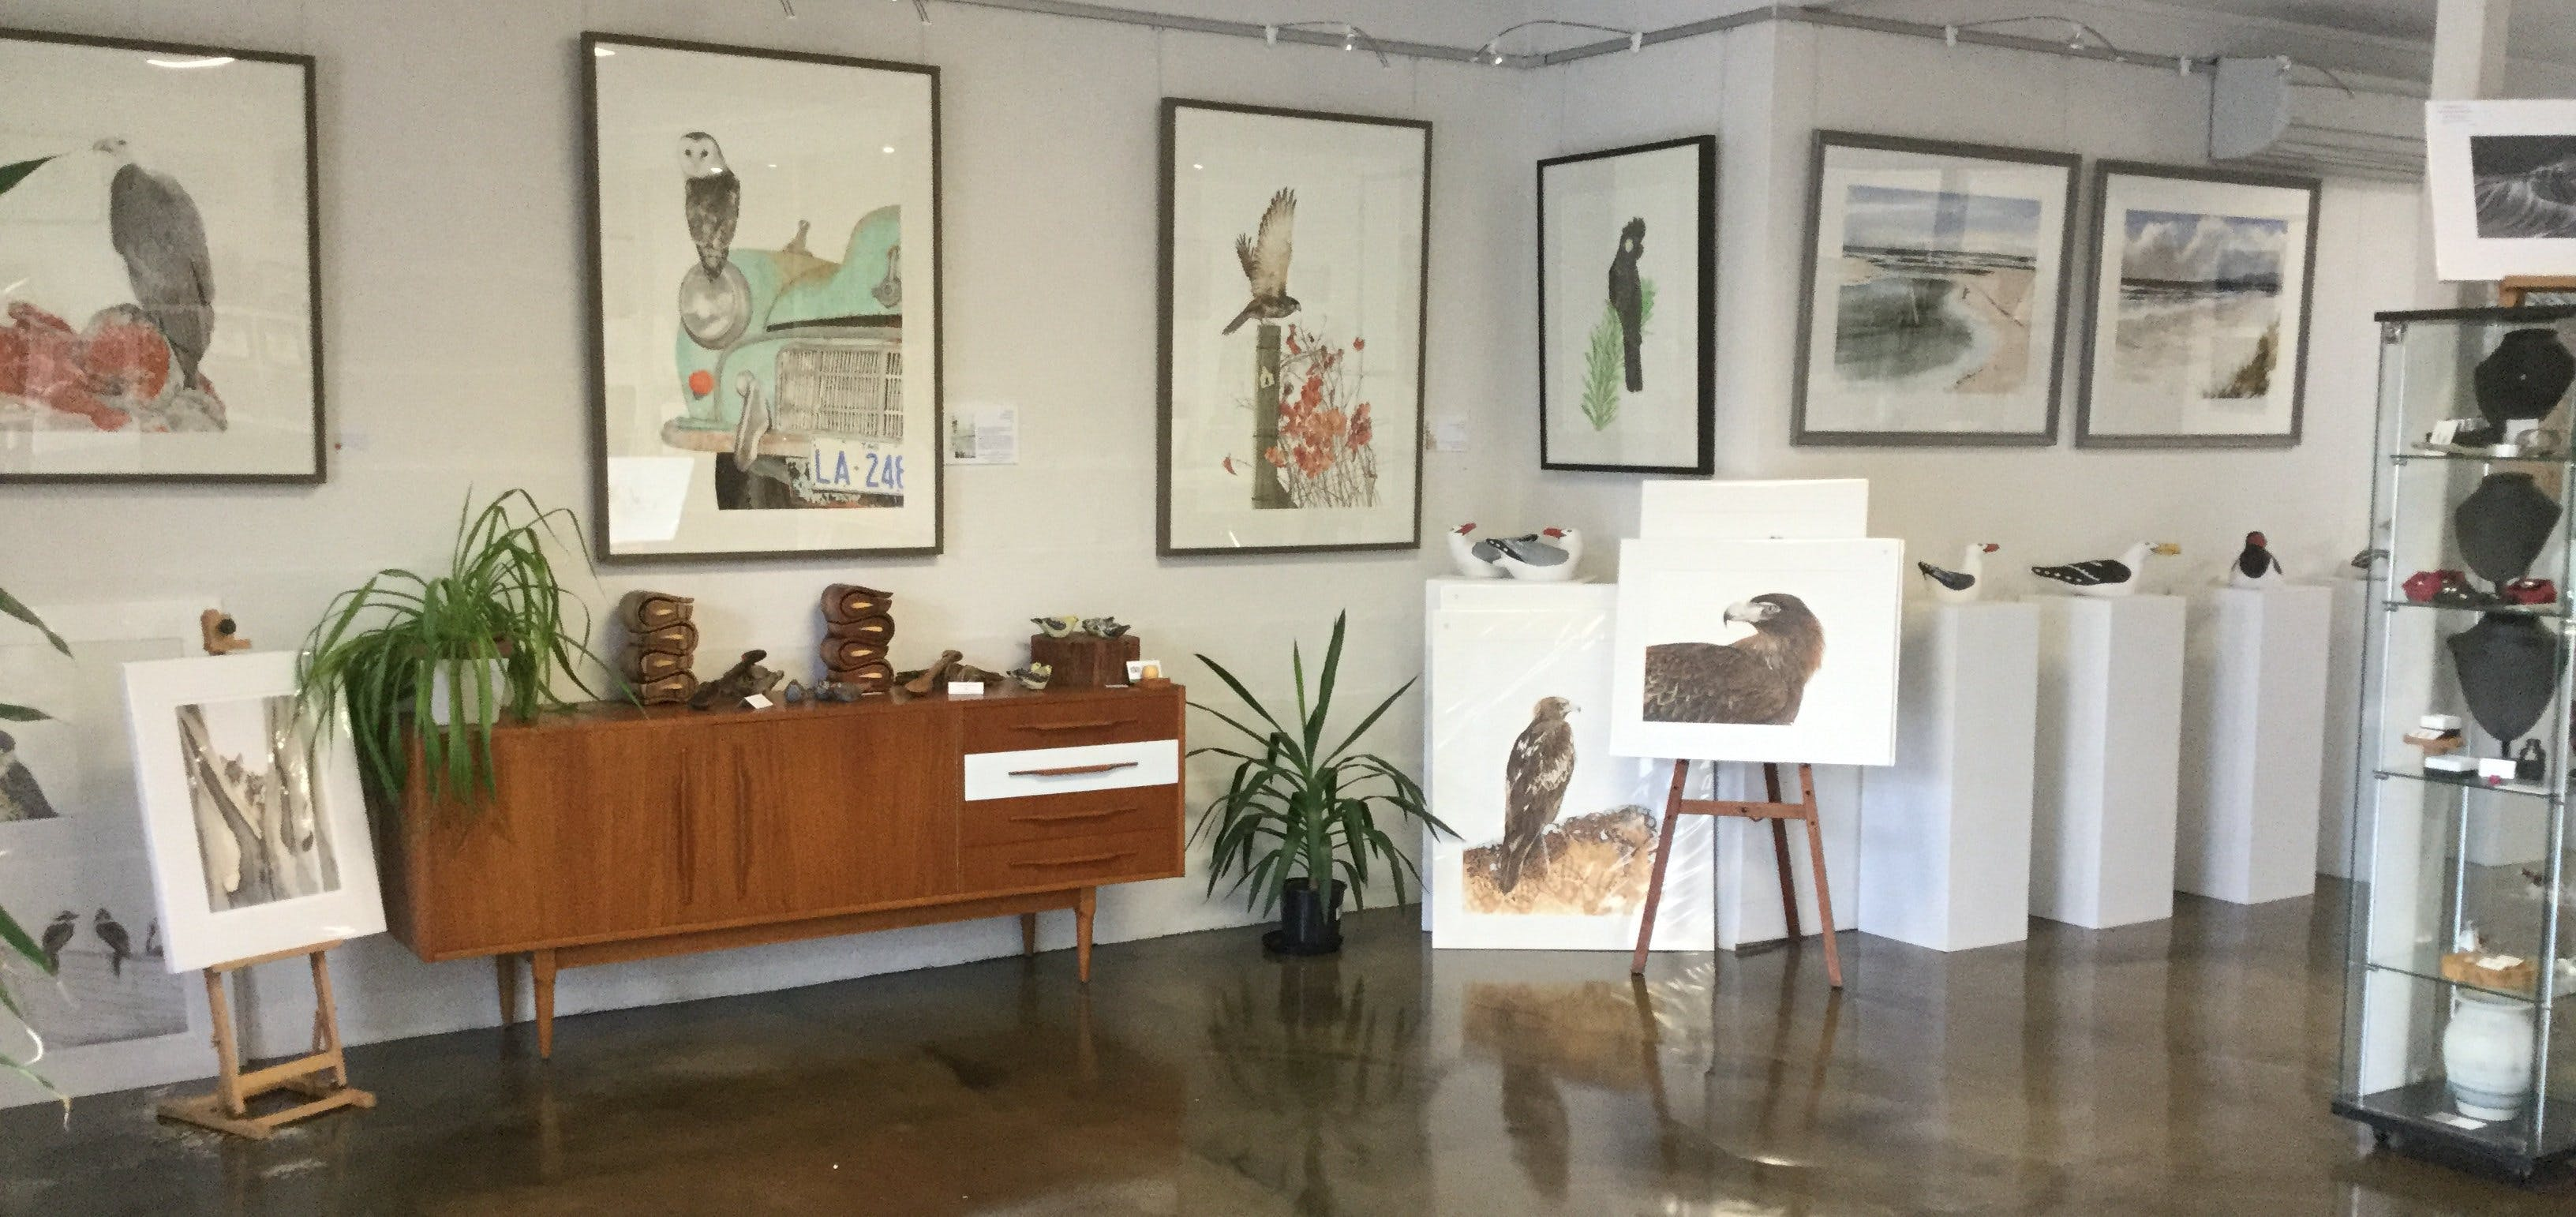 Waubs Bay Gallery - Surfers Paradise Gold Coast